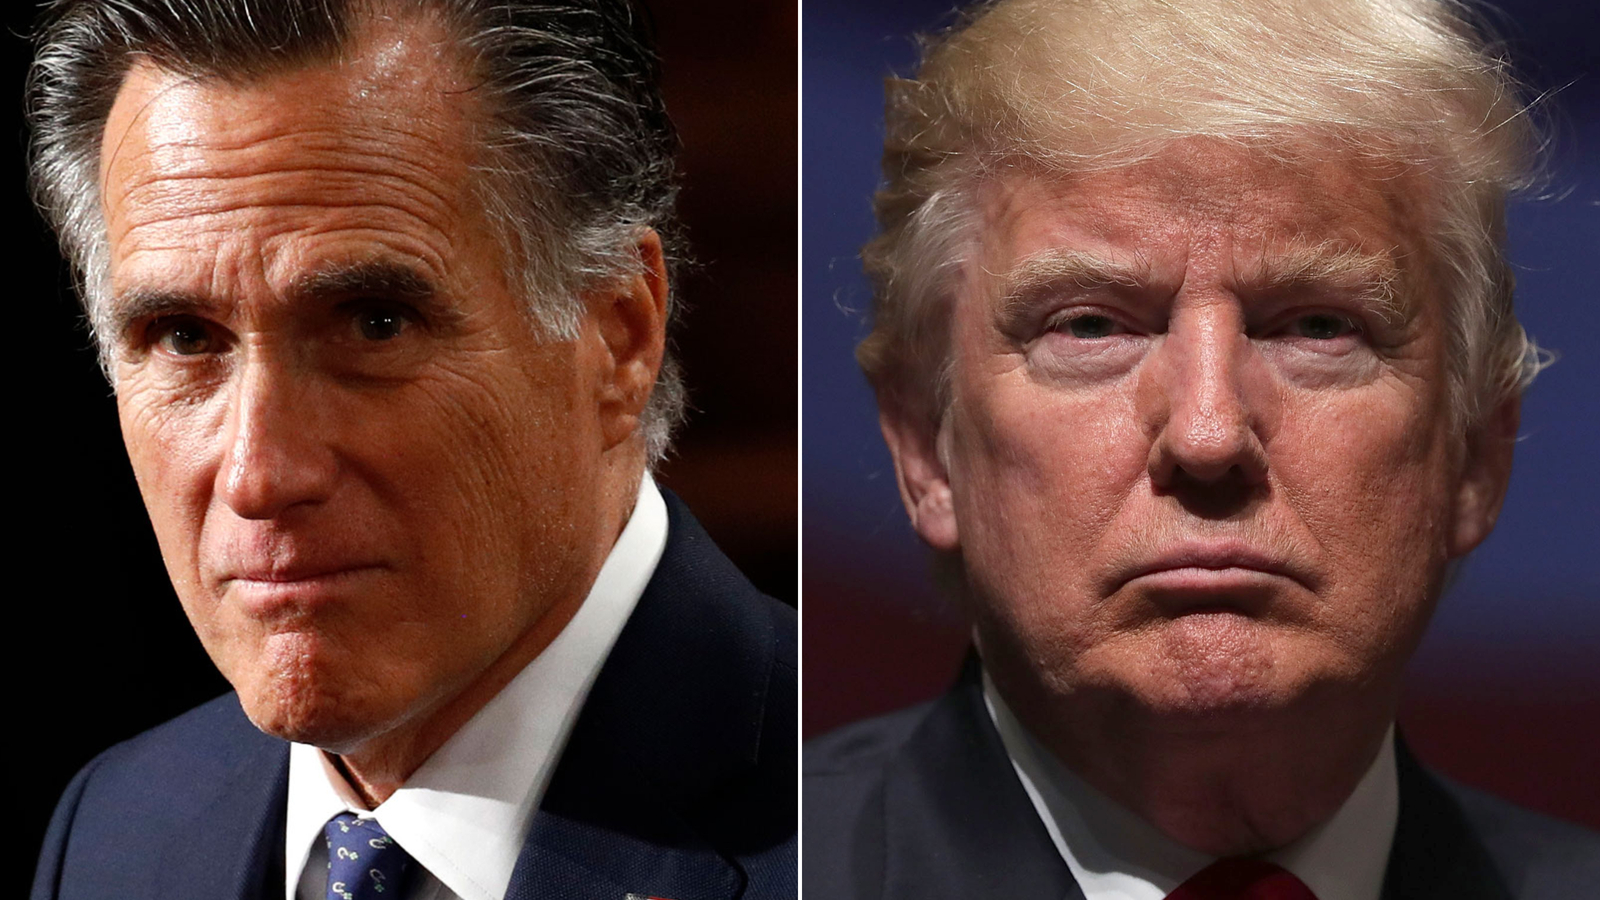 Romney calls Trump's leadership on Covid-19 'a great human tragedy'